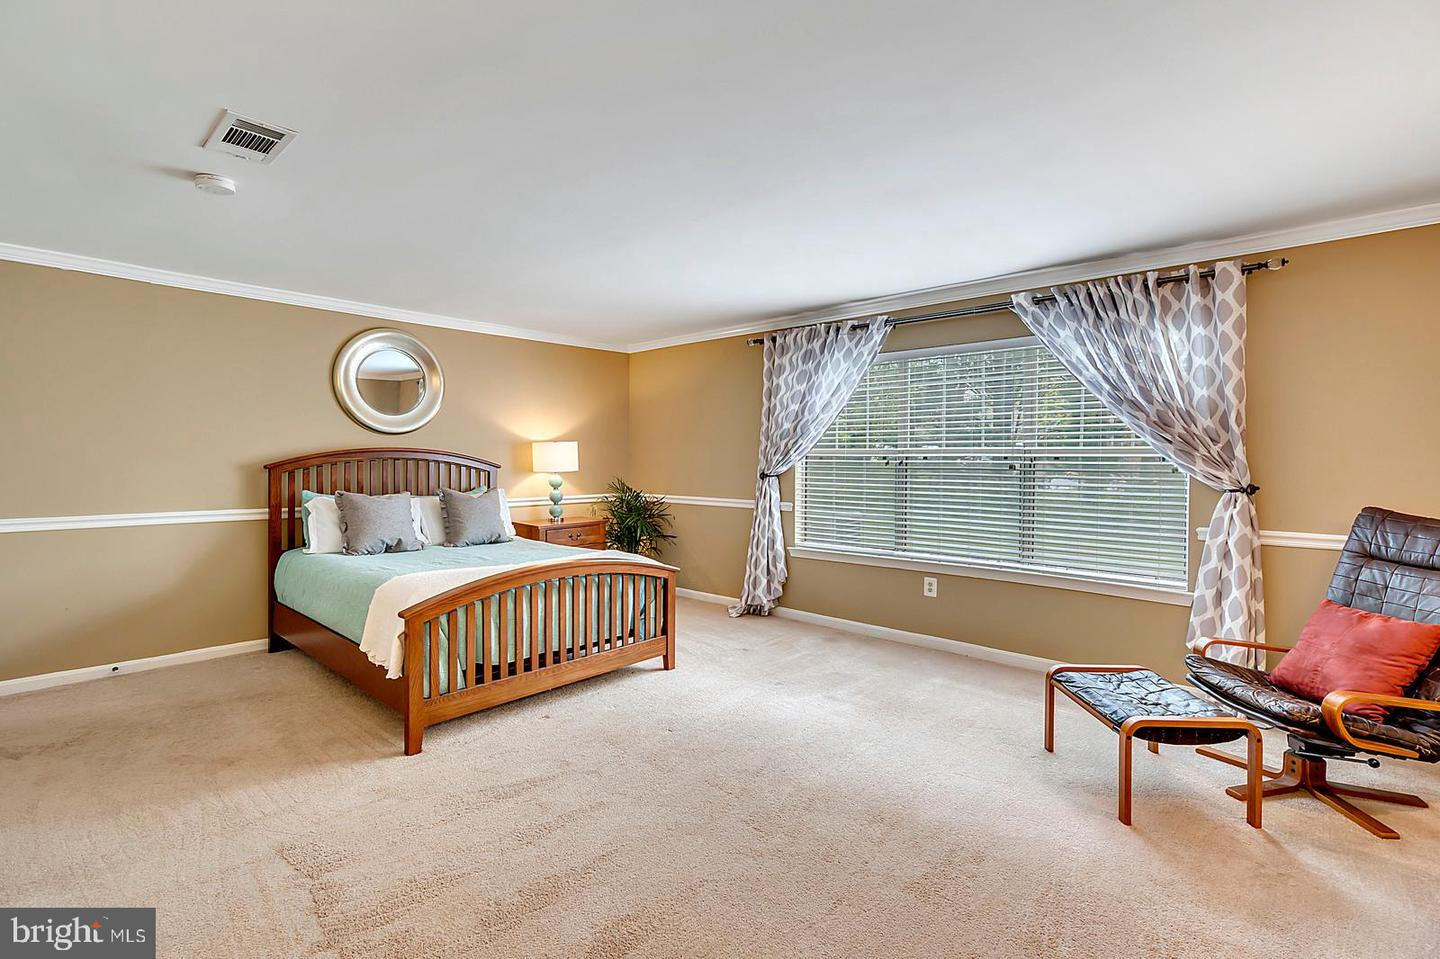 Additional photo for property listing at 723 A Cedar Crest Dr #a Warrenton, Virginia 20186 United States